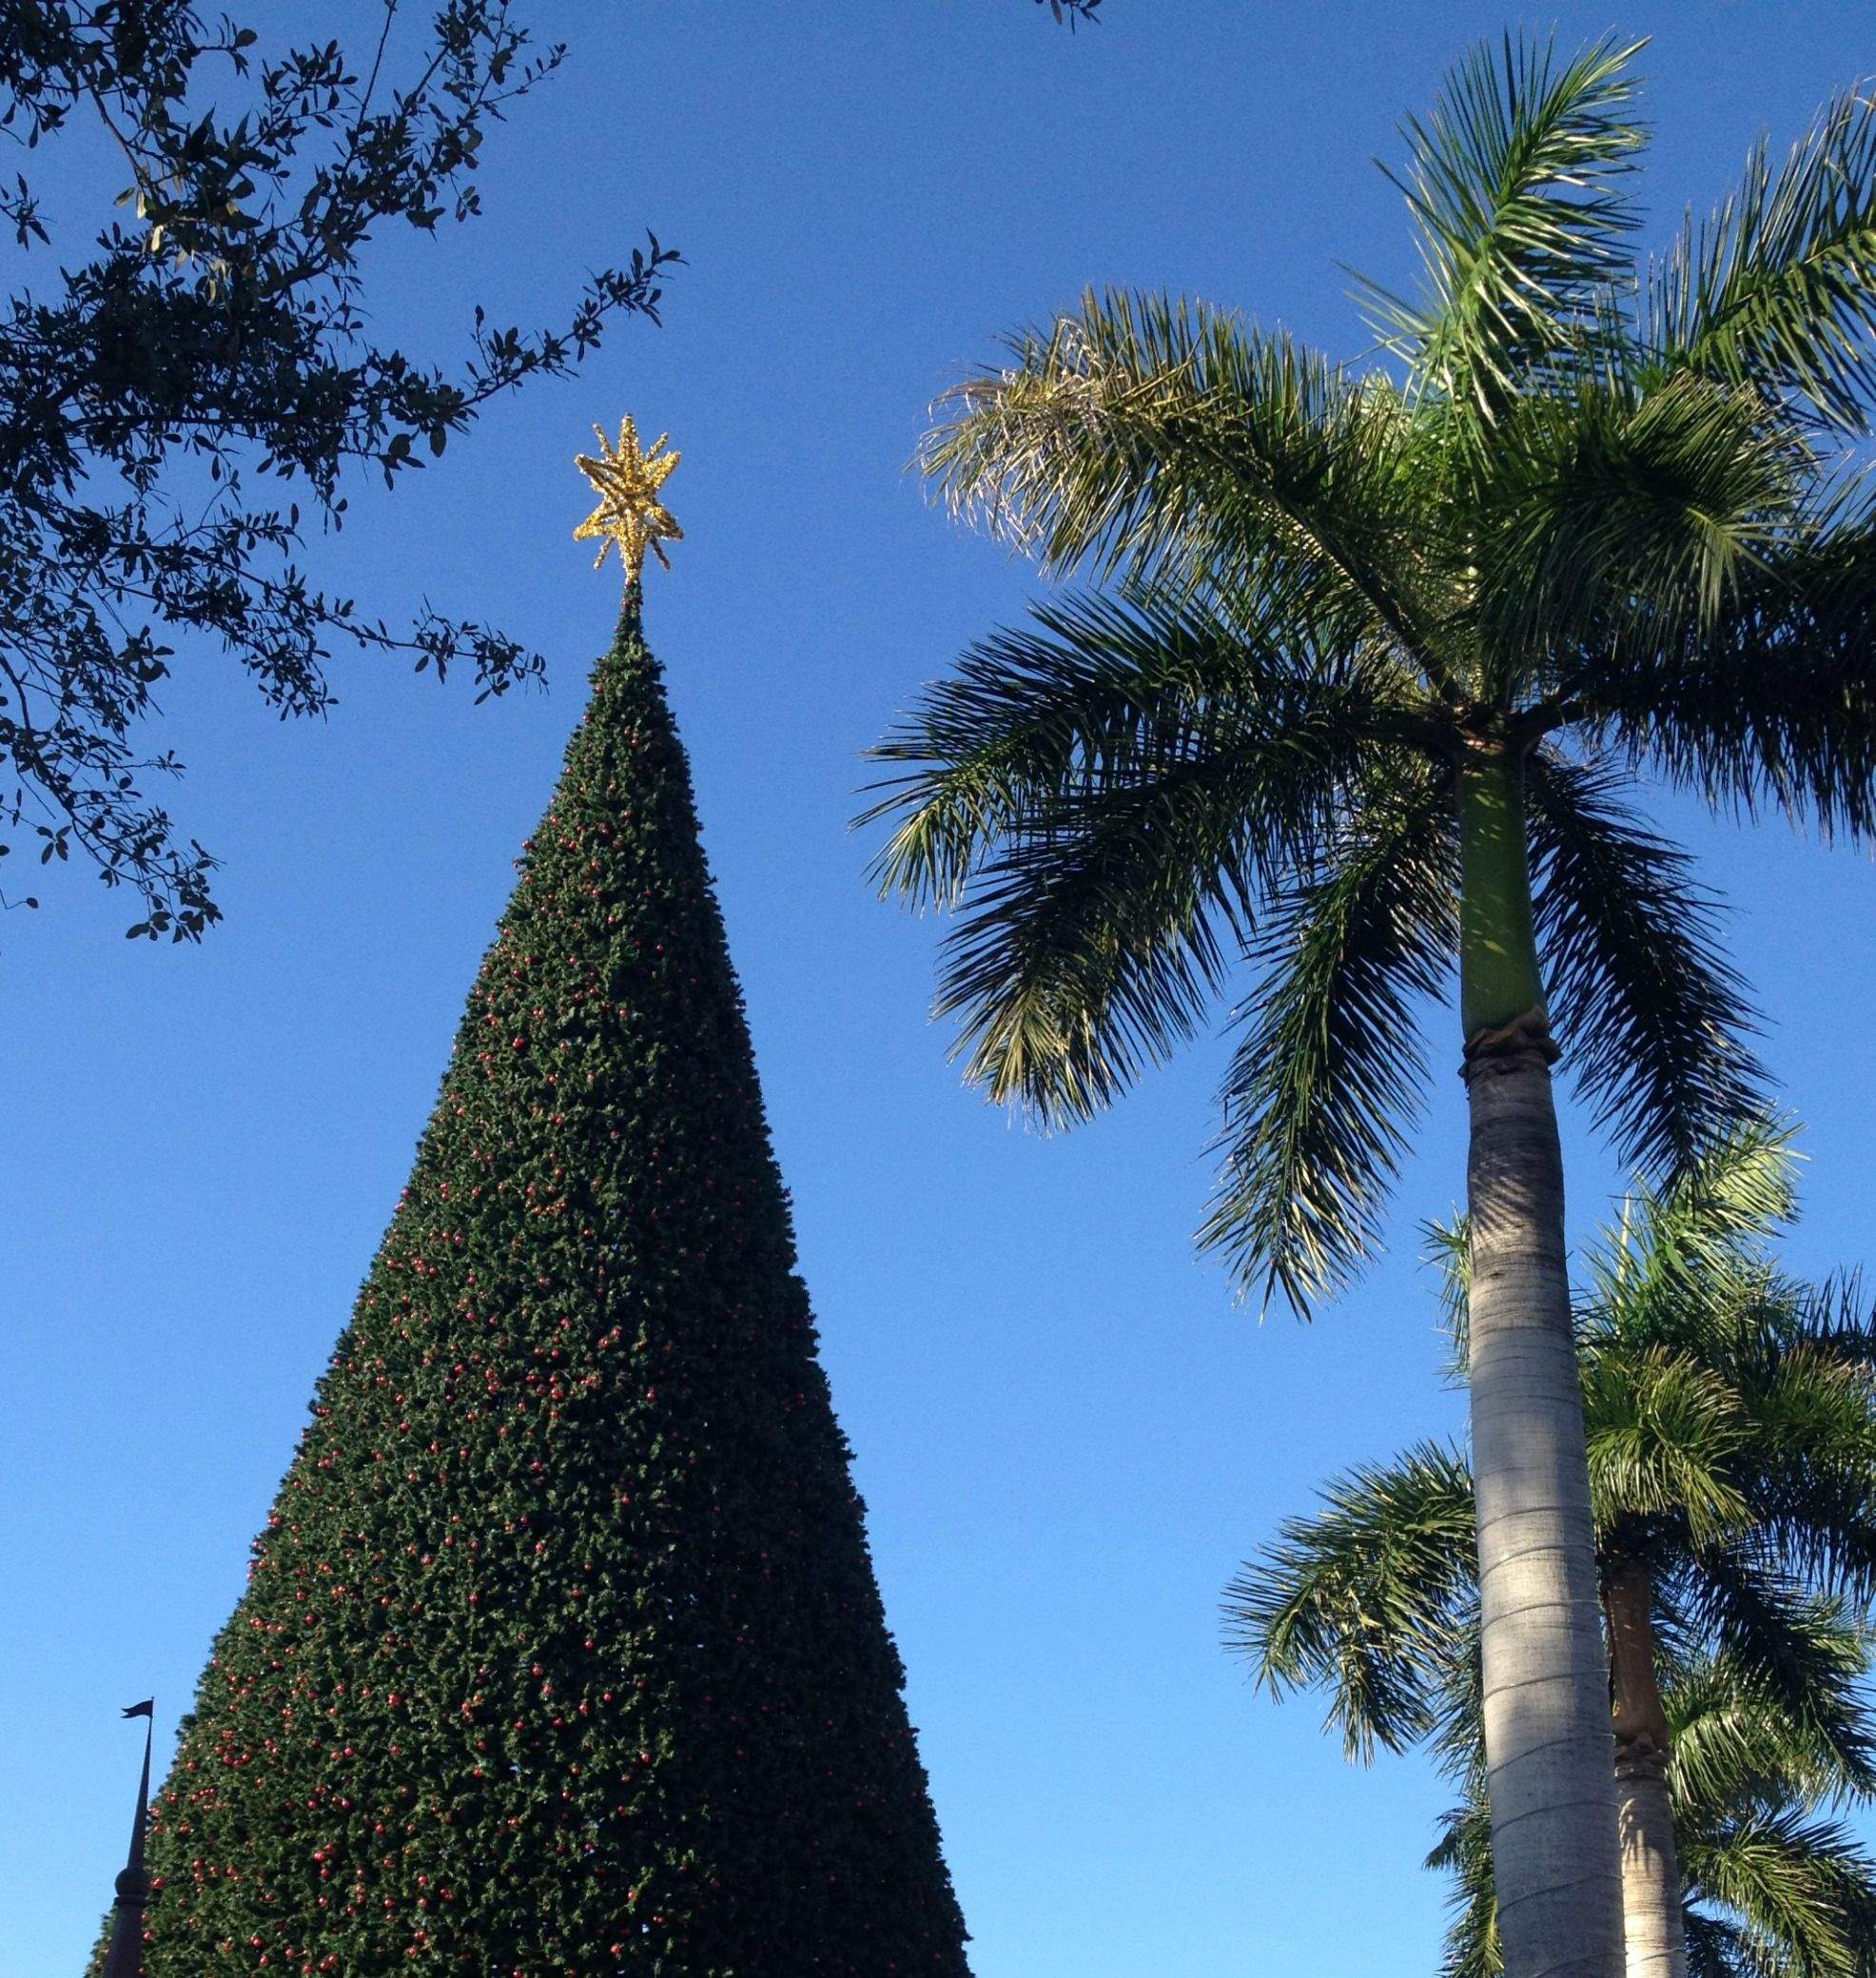 Stat atop the famous 100Foot Christmas Tree in Delray Beach FL